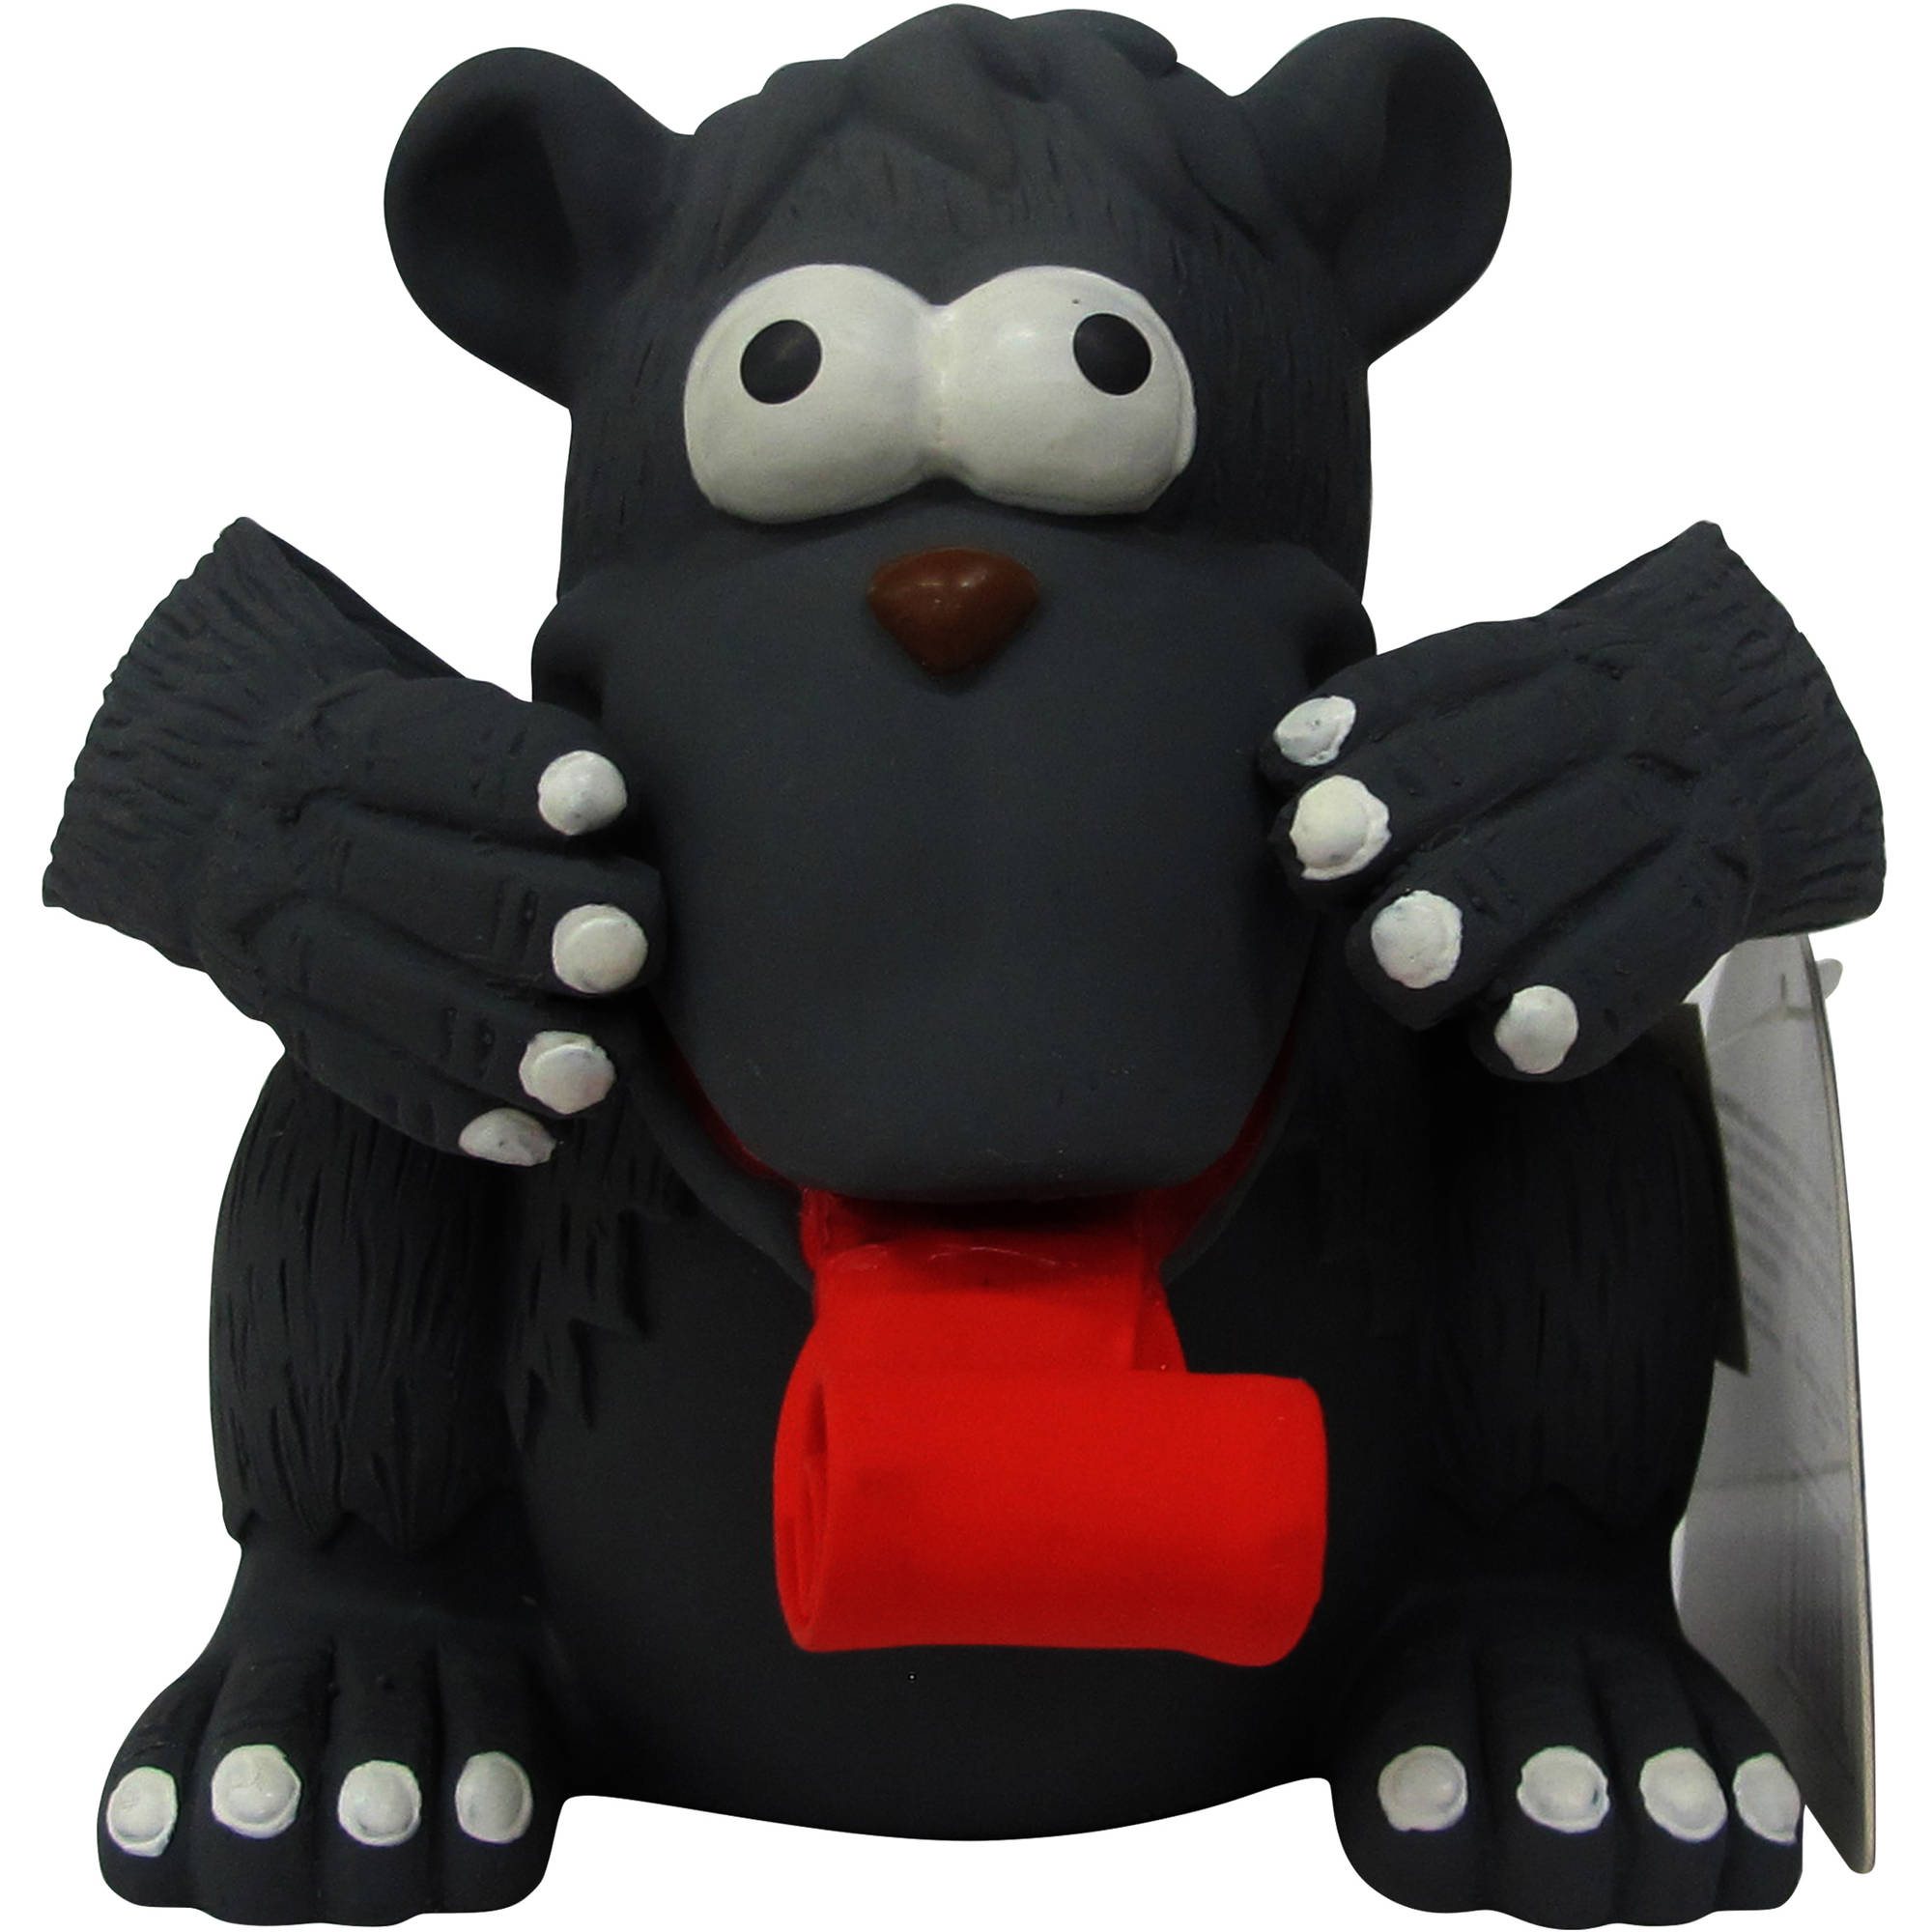 Gorilla Dog Toy by